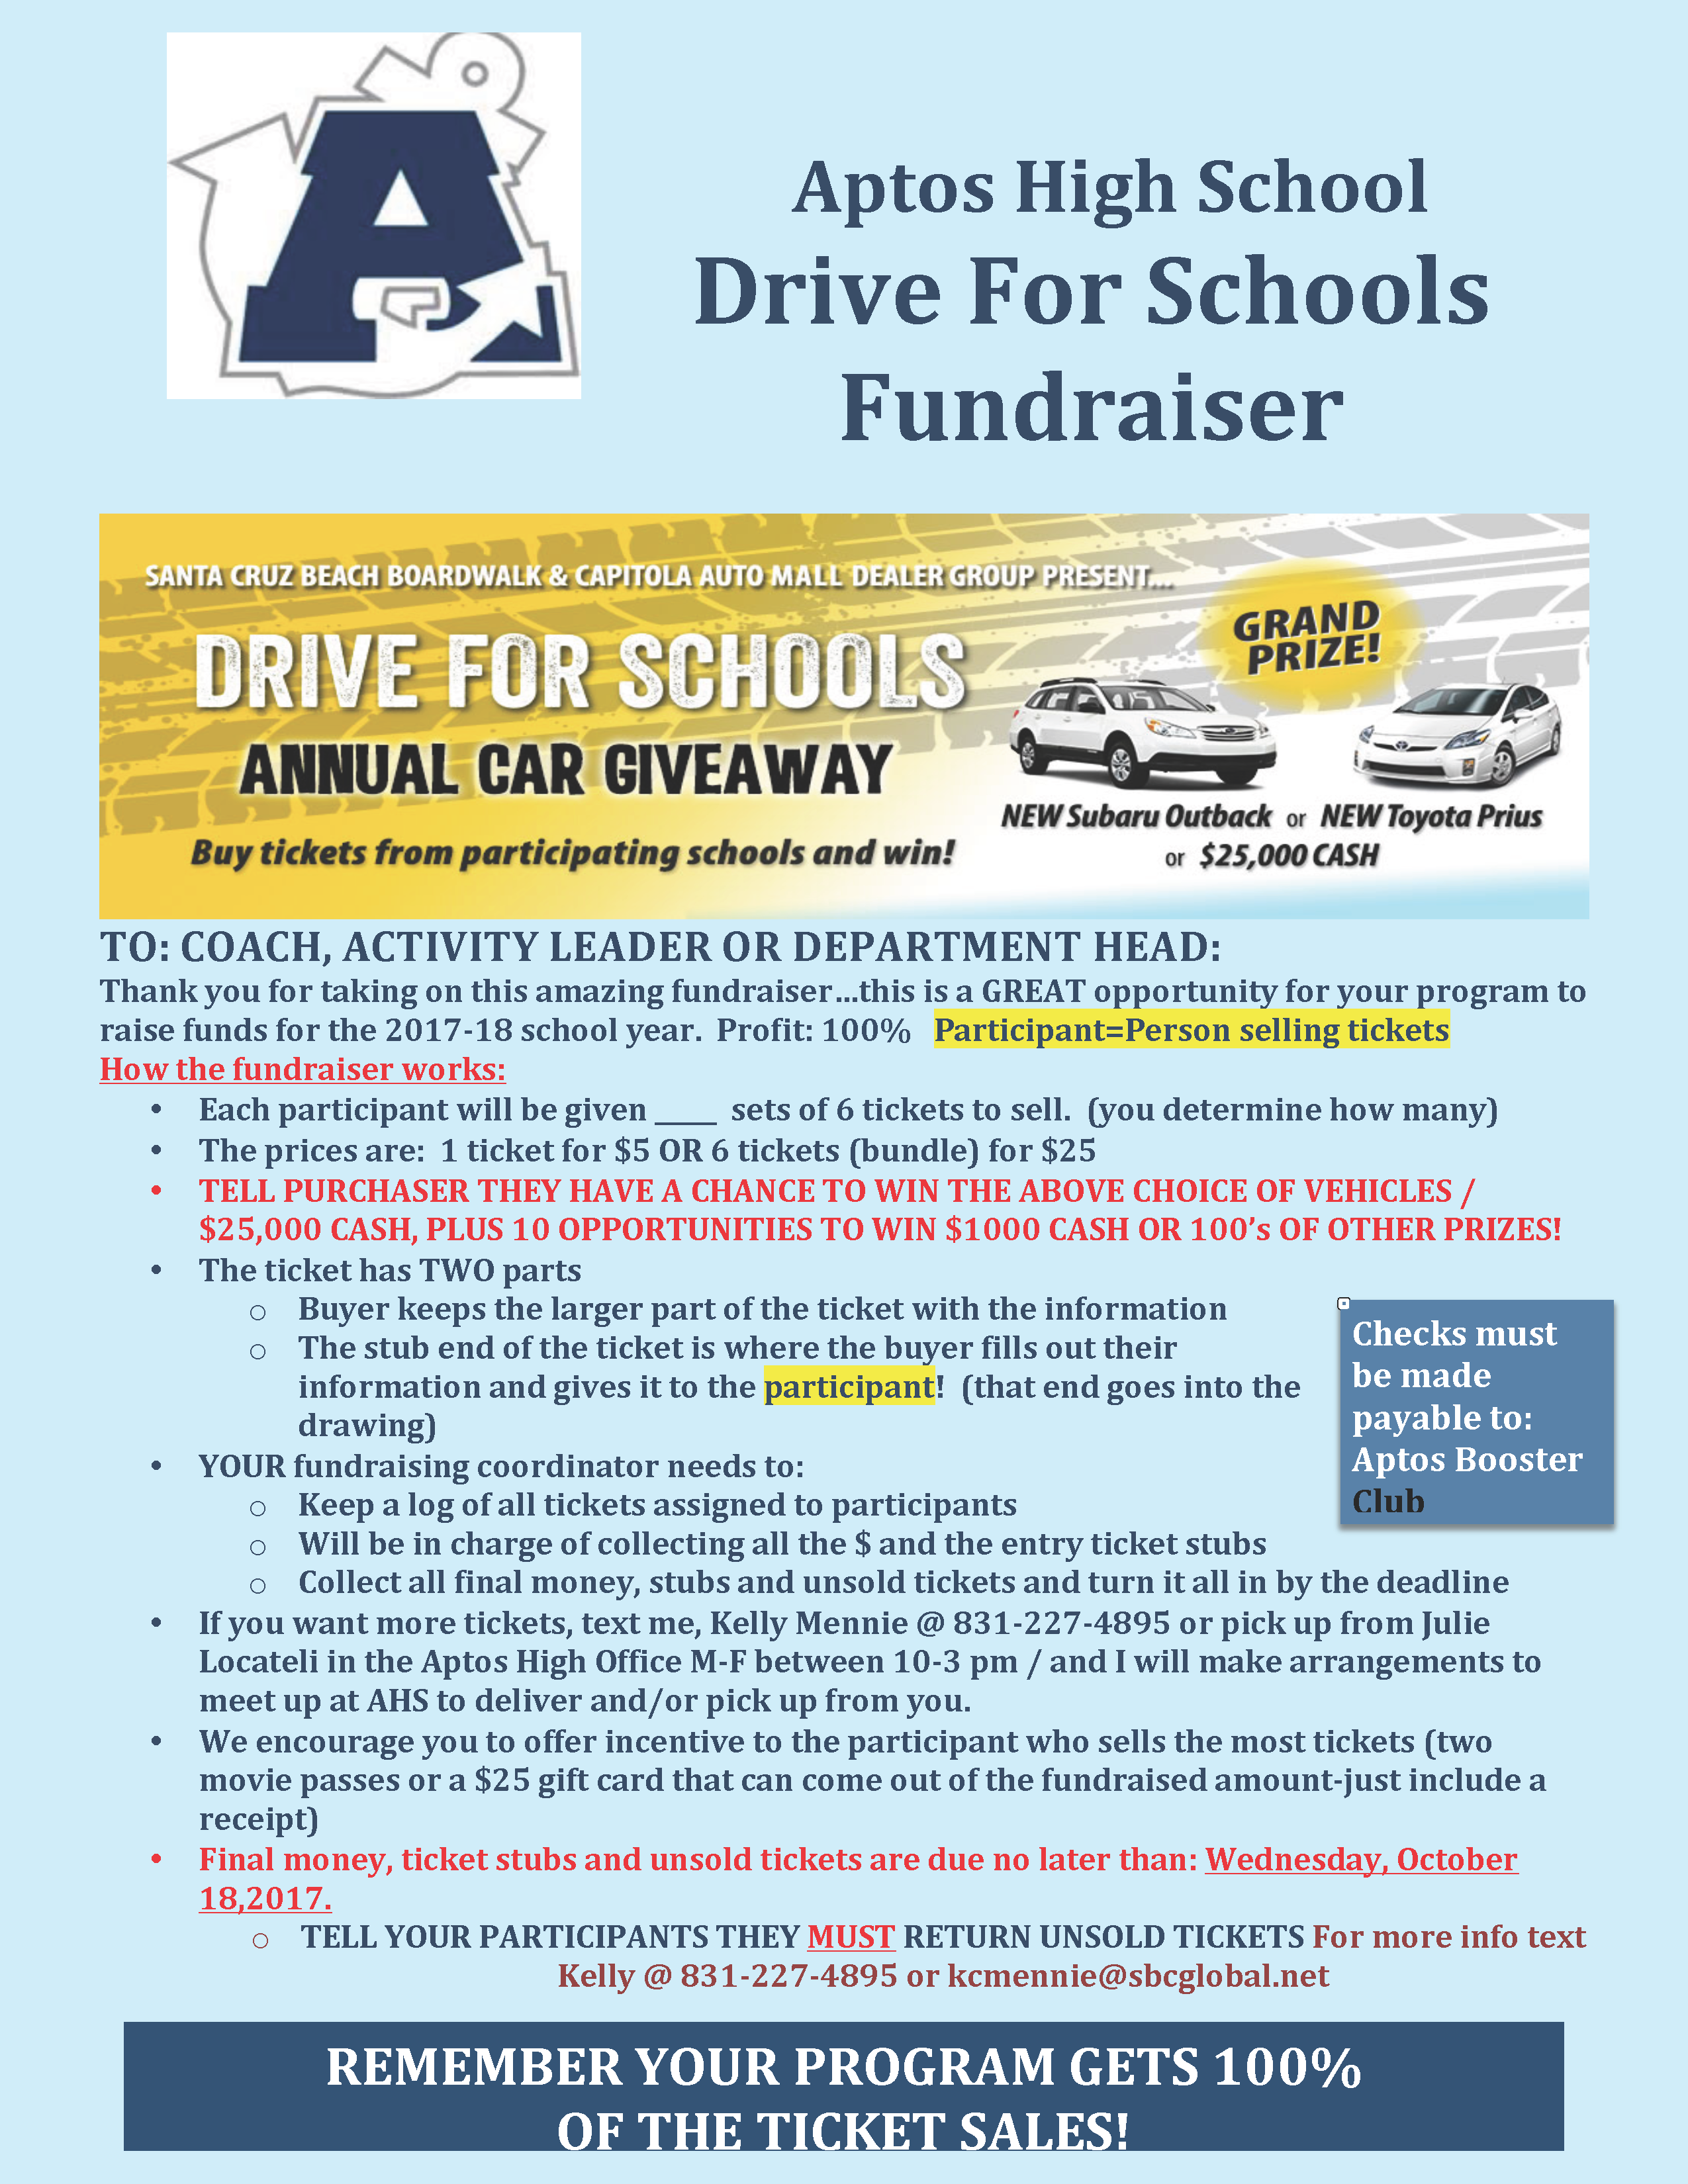 AHS Drive For Schools Info Sheet_2017.png